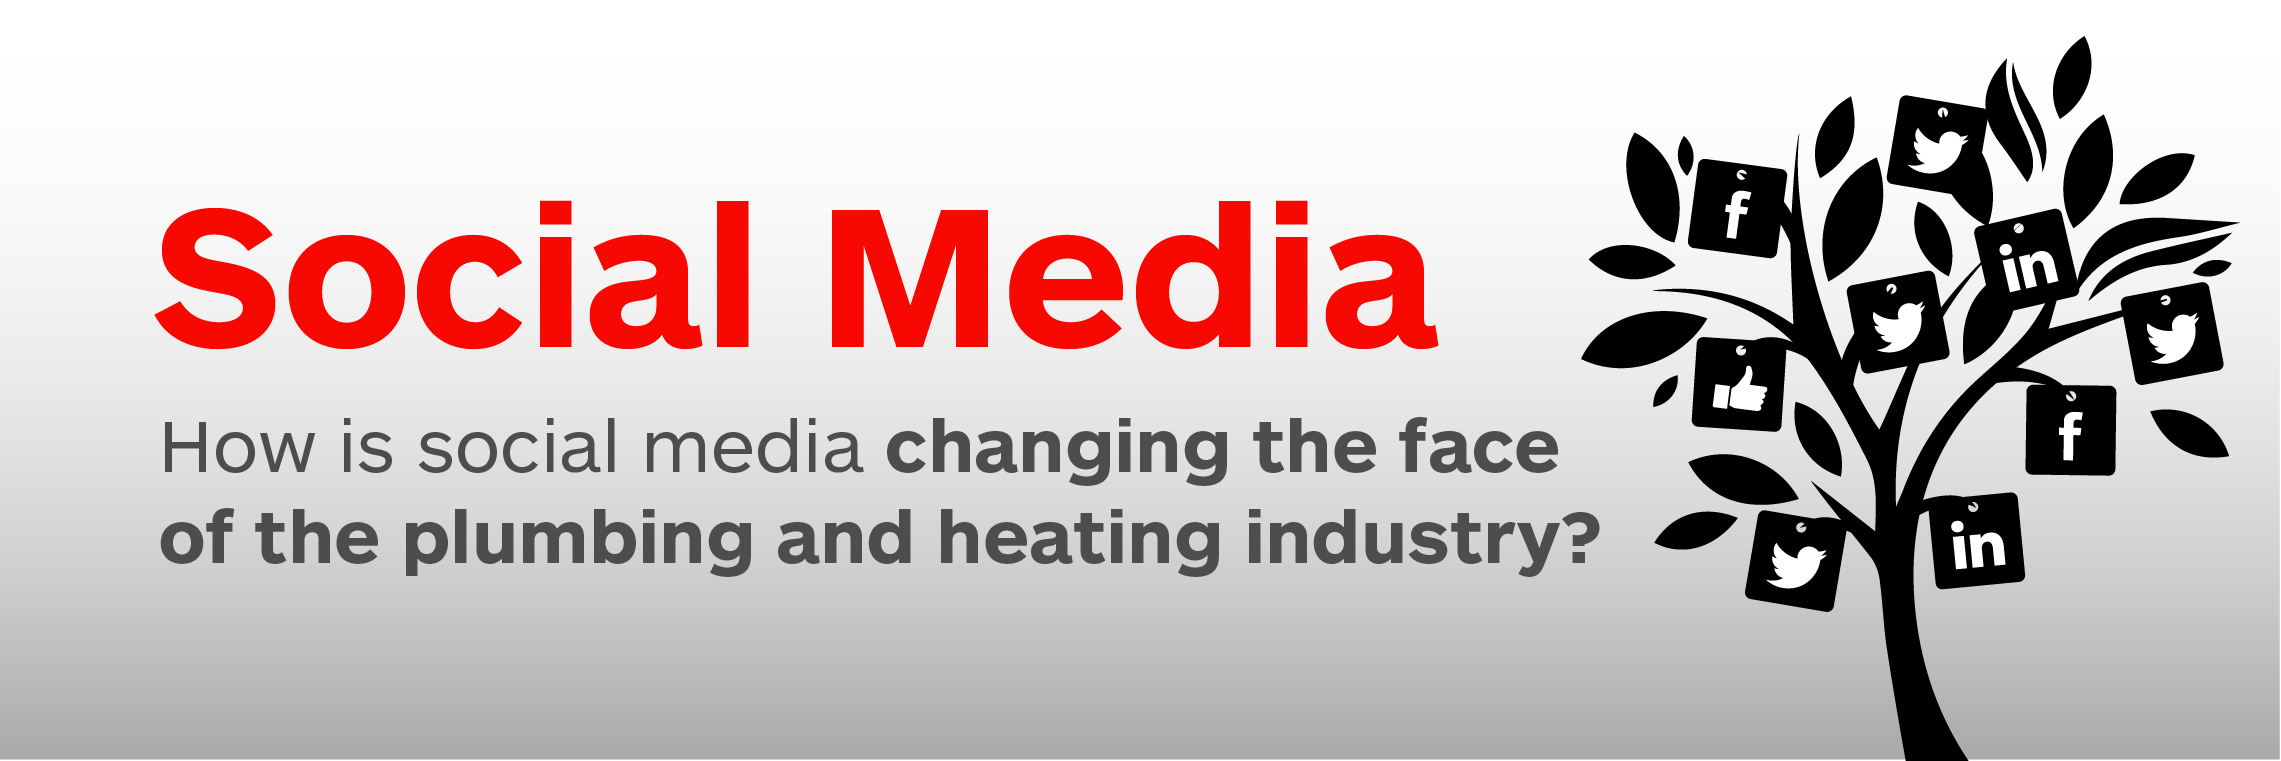 How is social media changing the face of the plumbing and heating industry?